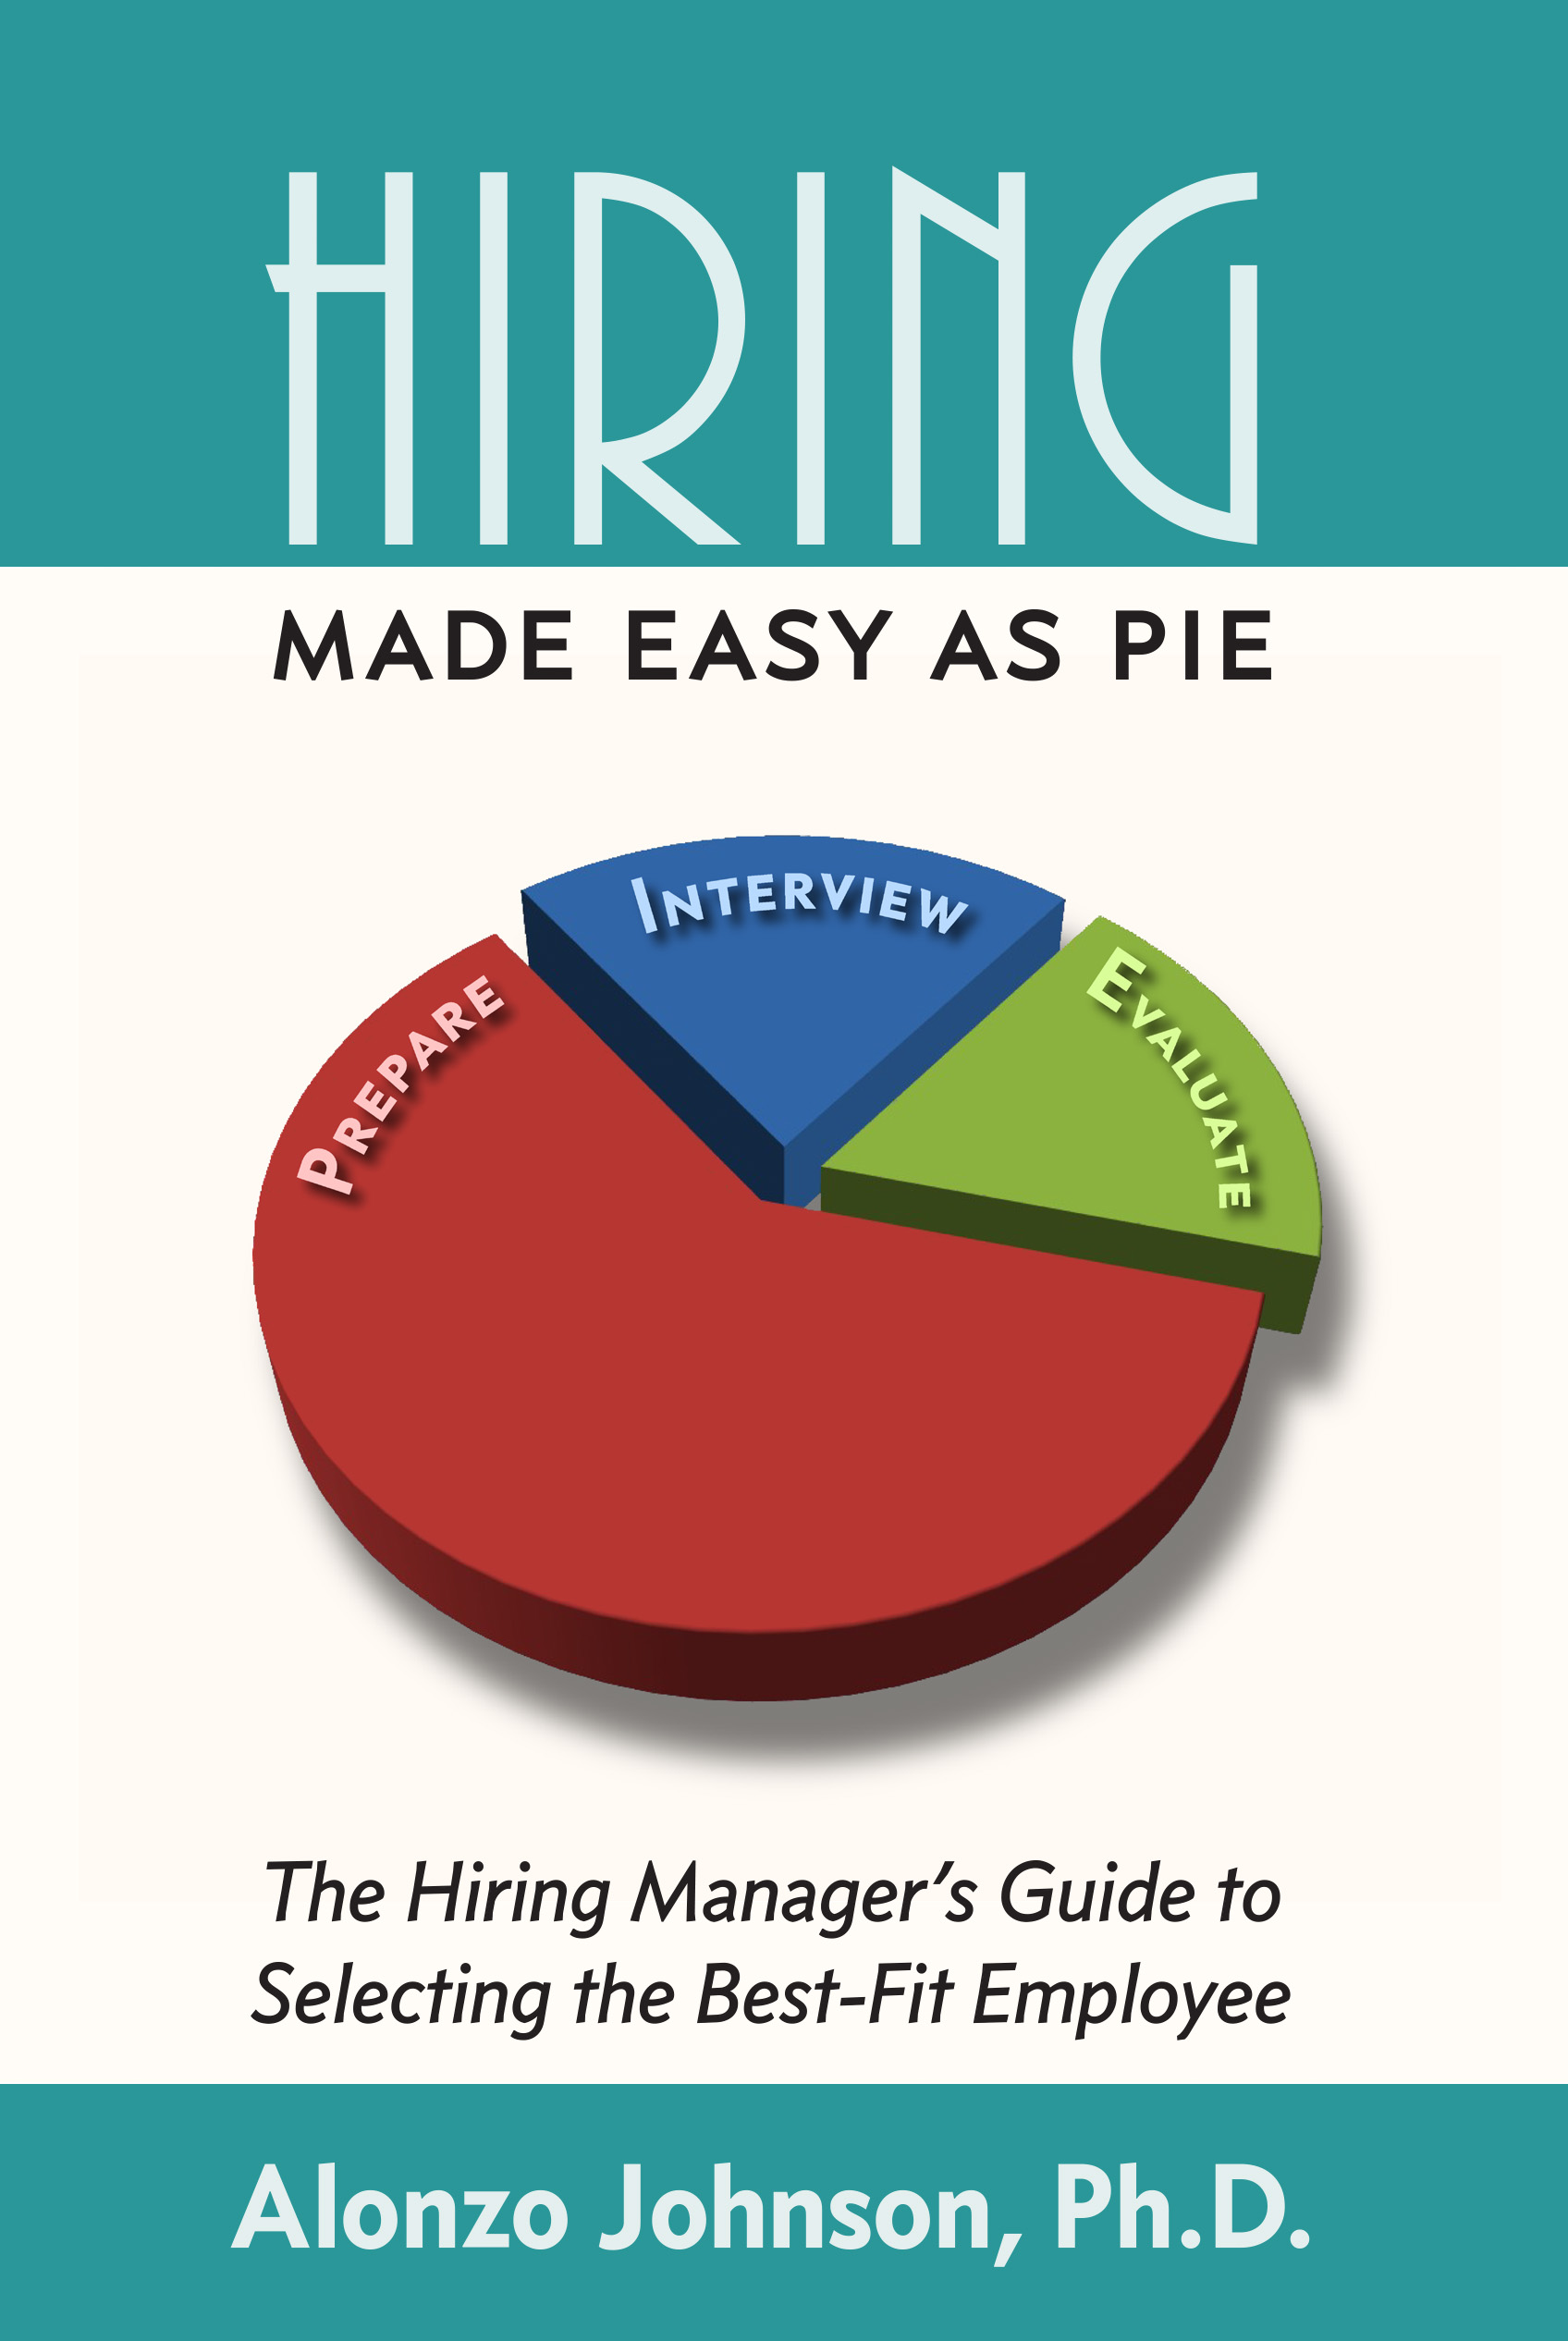 Hiring Made Easy as PIE